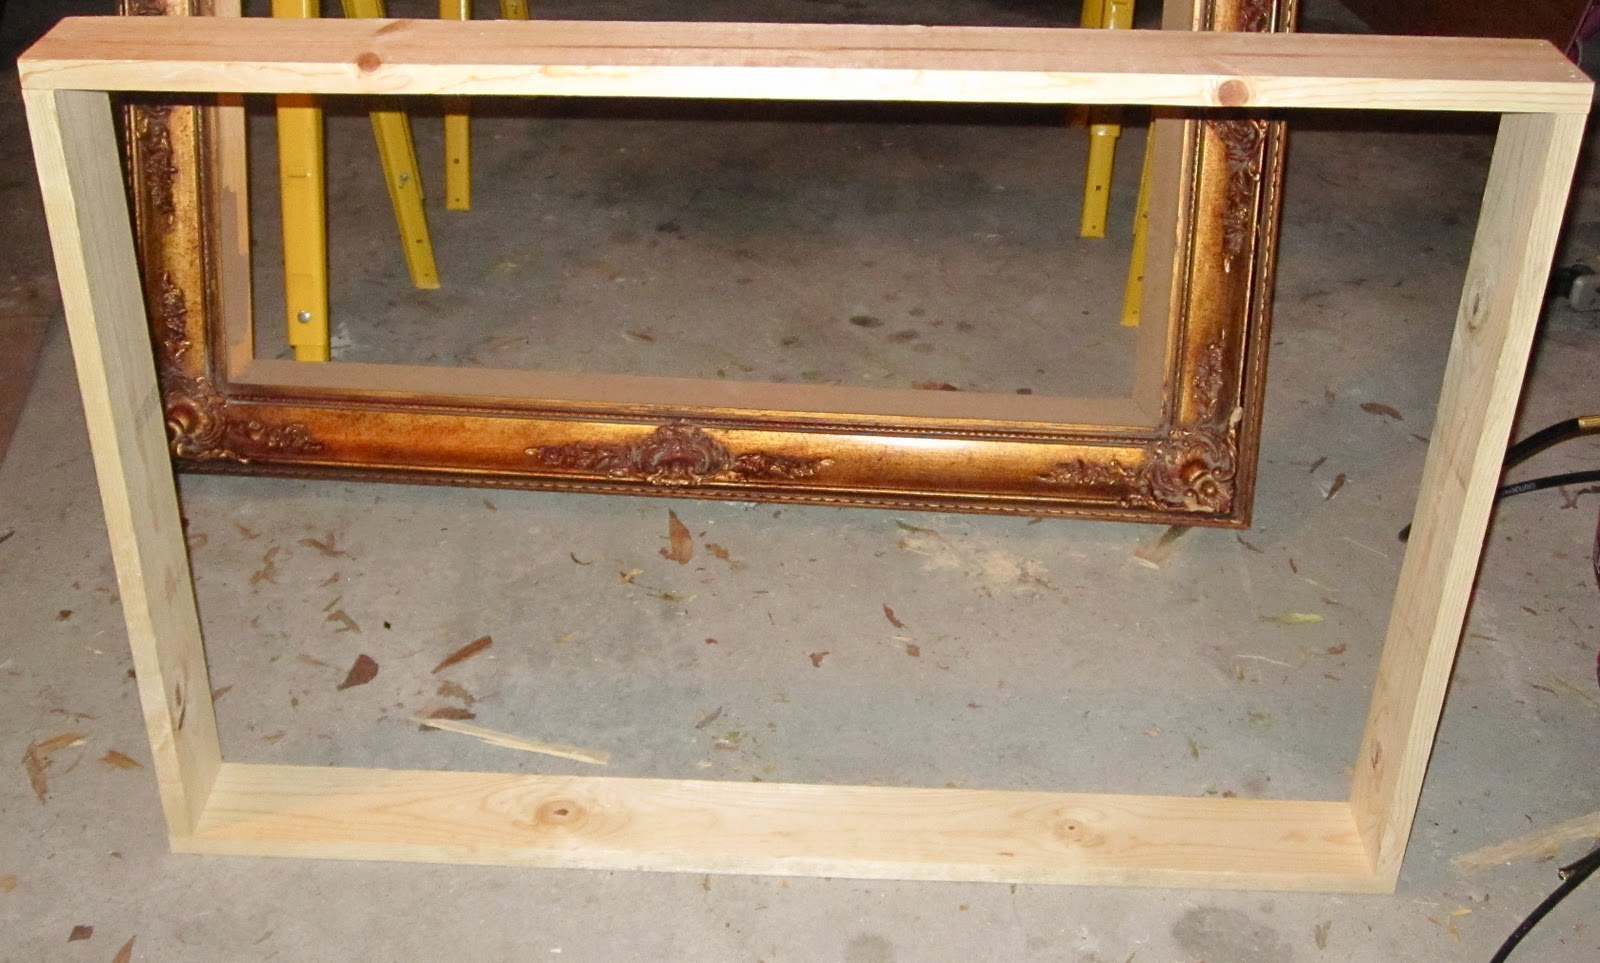 How to make a box frame out of wood frame design reviews for Premier motors columbia tn